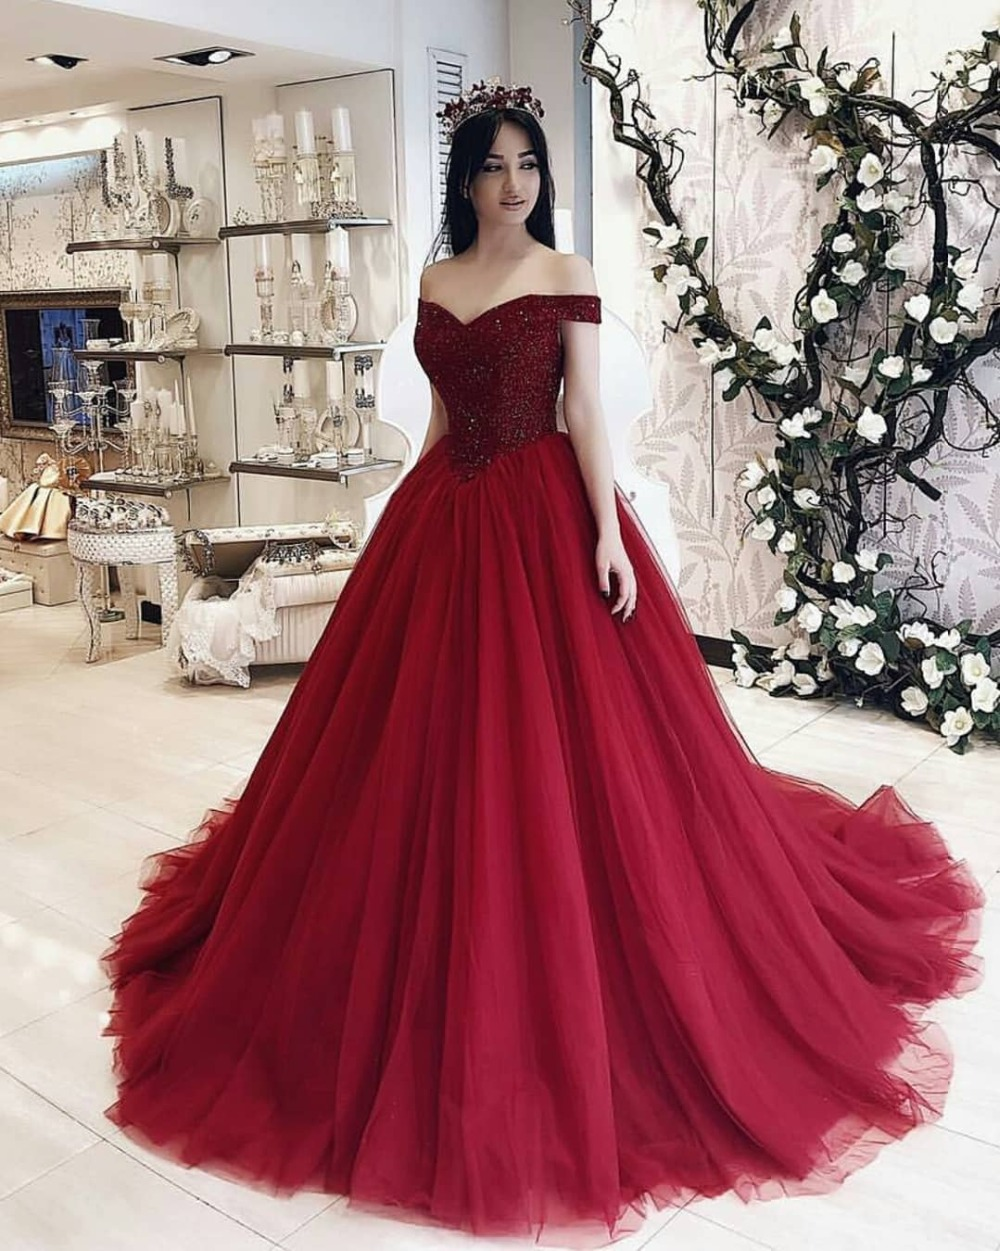 Red Ball Gown Quinceanera Dresses Arabic Dubai Off The Shoulder Beaded Top Burgundy Long Sweet 16 Dress 15 Years Birthday Gowns Quinceanera Dresses Aliexpress